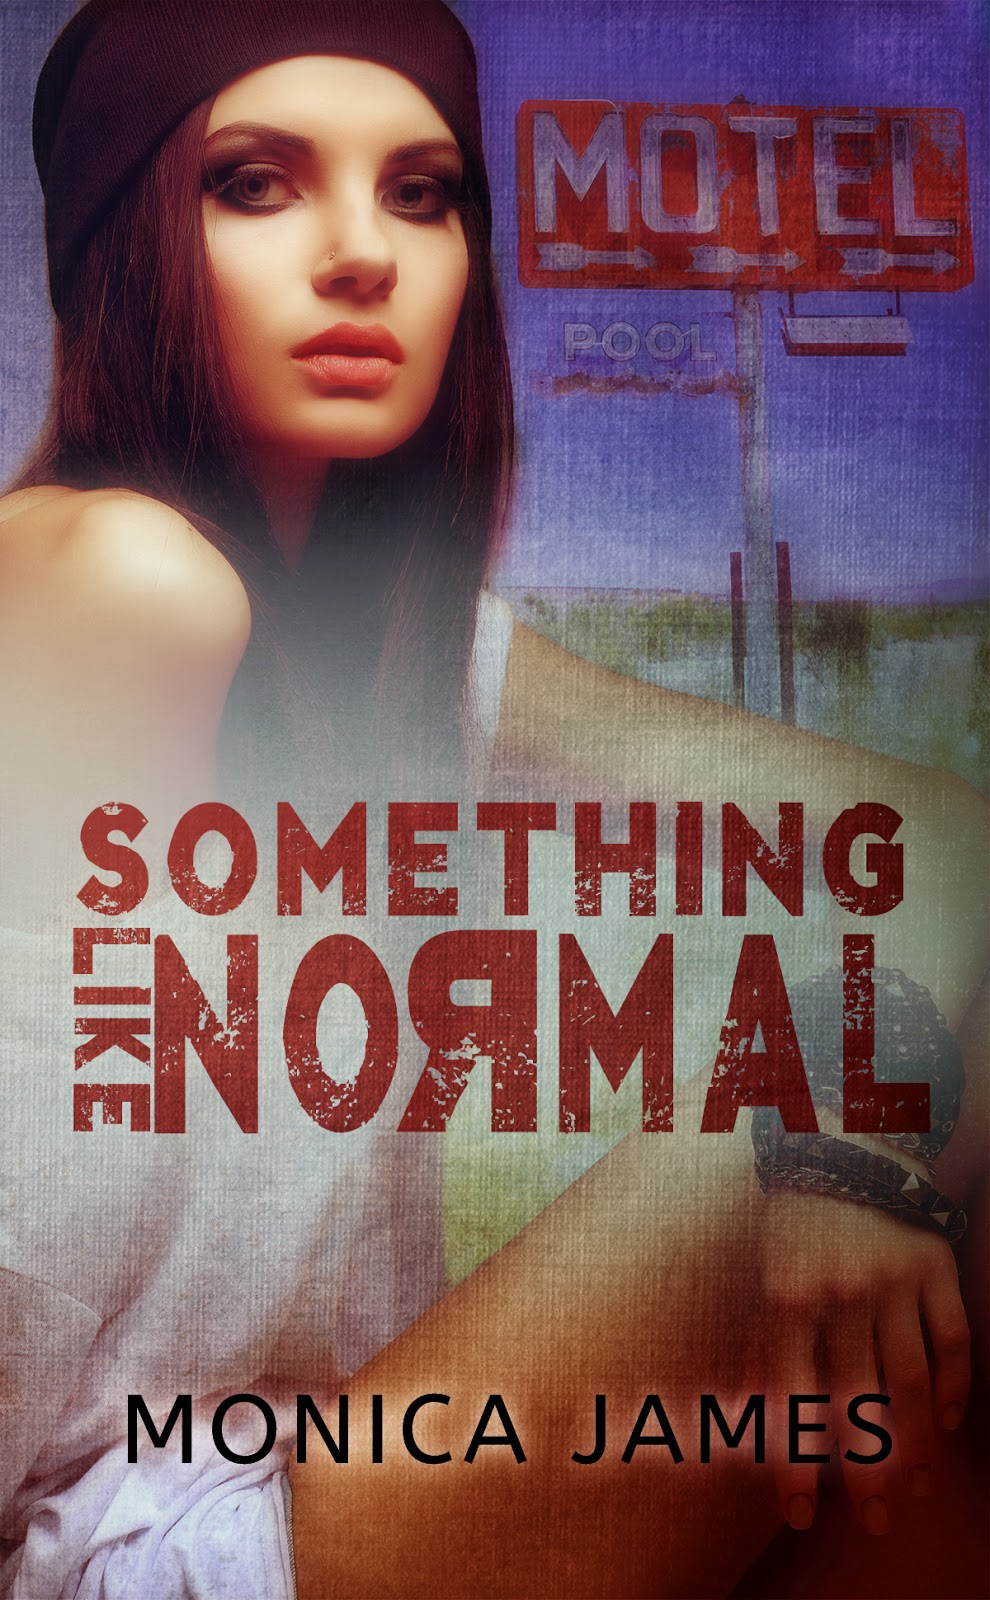 https://www.goodreads.com/book/show/20802709-something-like-normal